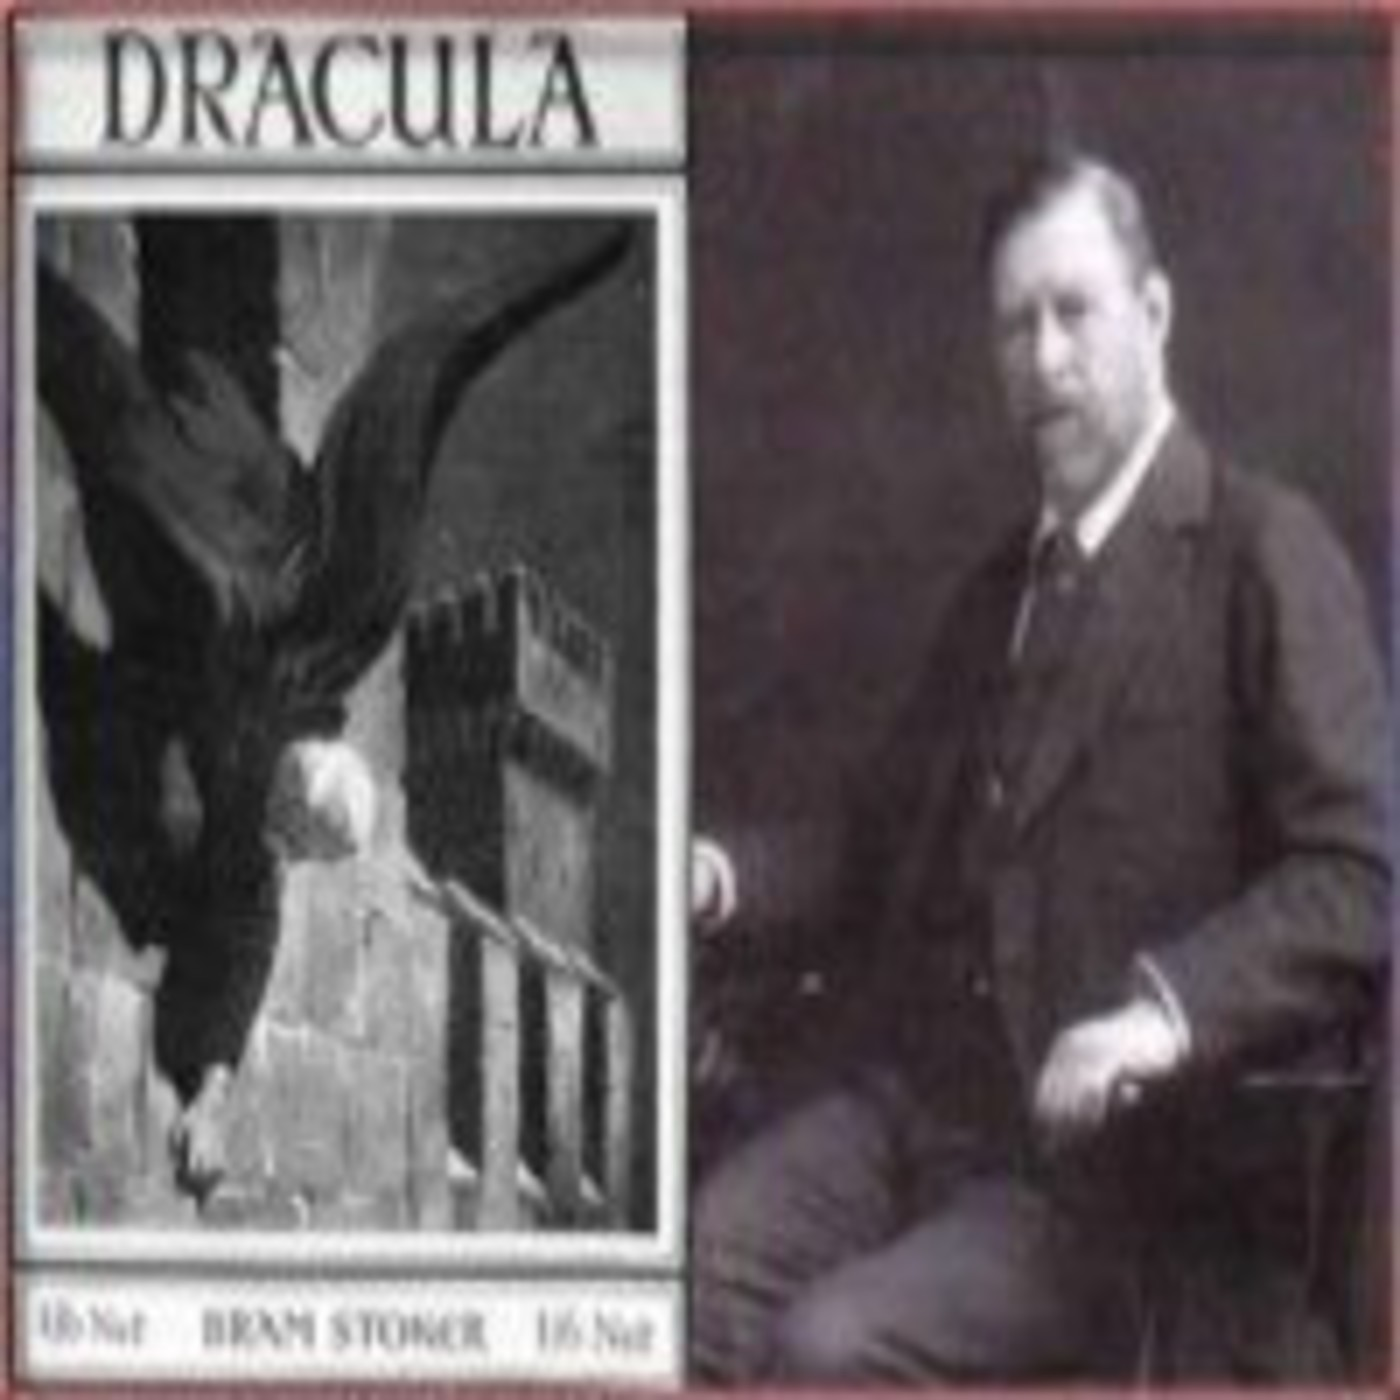 dracula essays bram stoker 1)there are many ways that bram stoker's dracula can be considered anti-christian byshowing of anti-christian values and perversions of the christian religion in chapter one asjonathan harker is traveling to castle dracula he is met by several people.